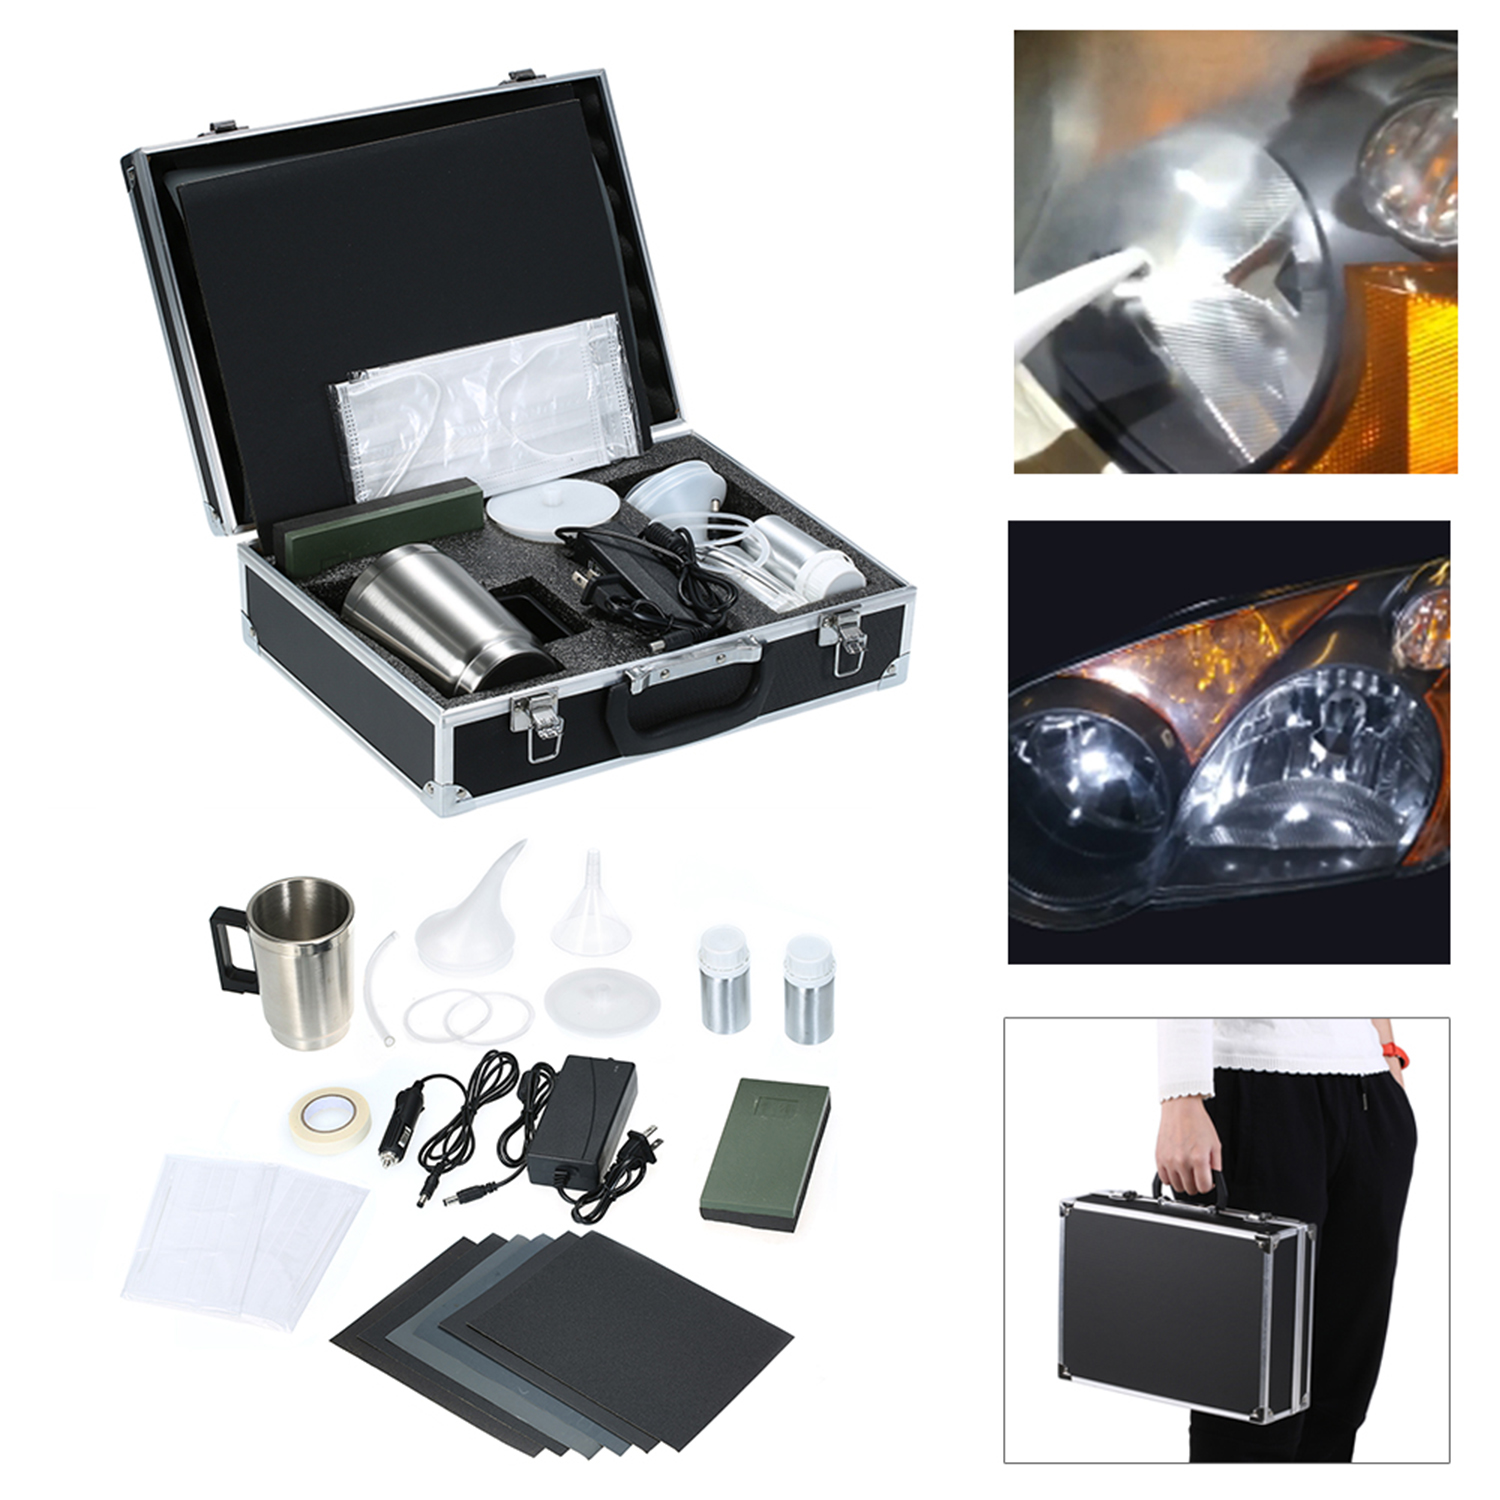 Automobile Headlight Restoration Kits Car Headlight Polish Repair Tool Glass Scratch Repair Headlight Renovation